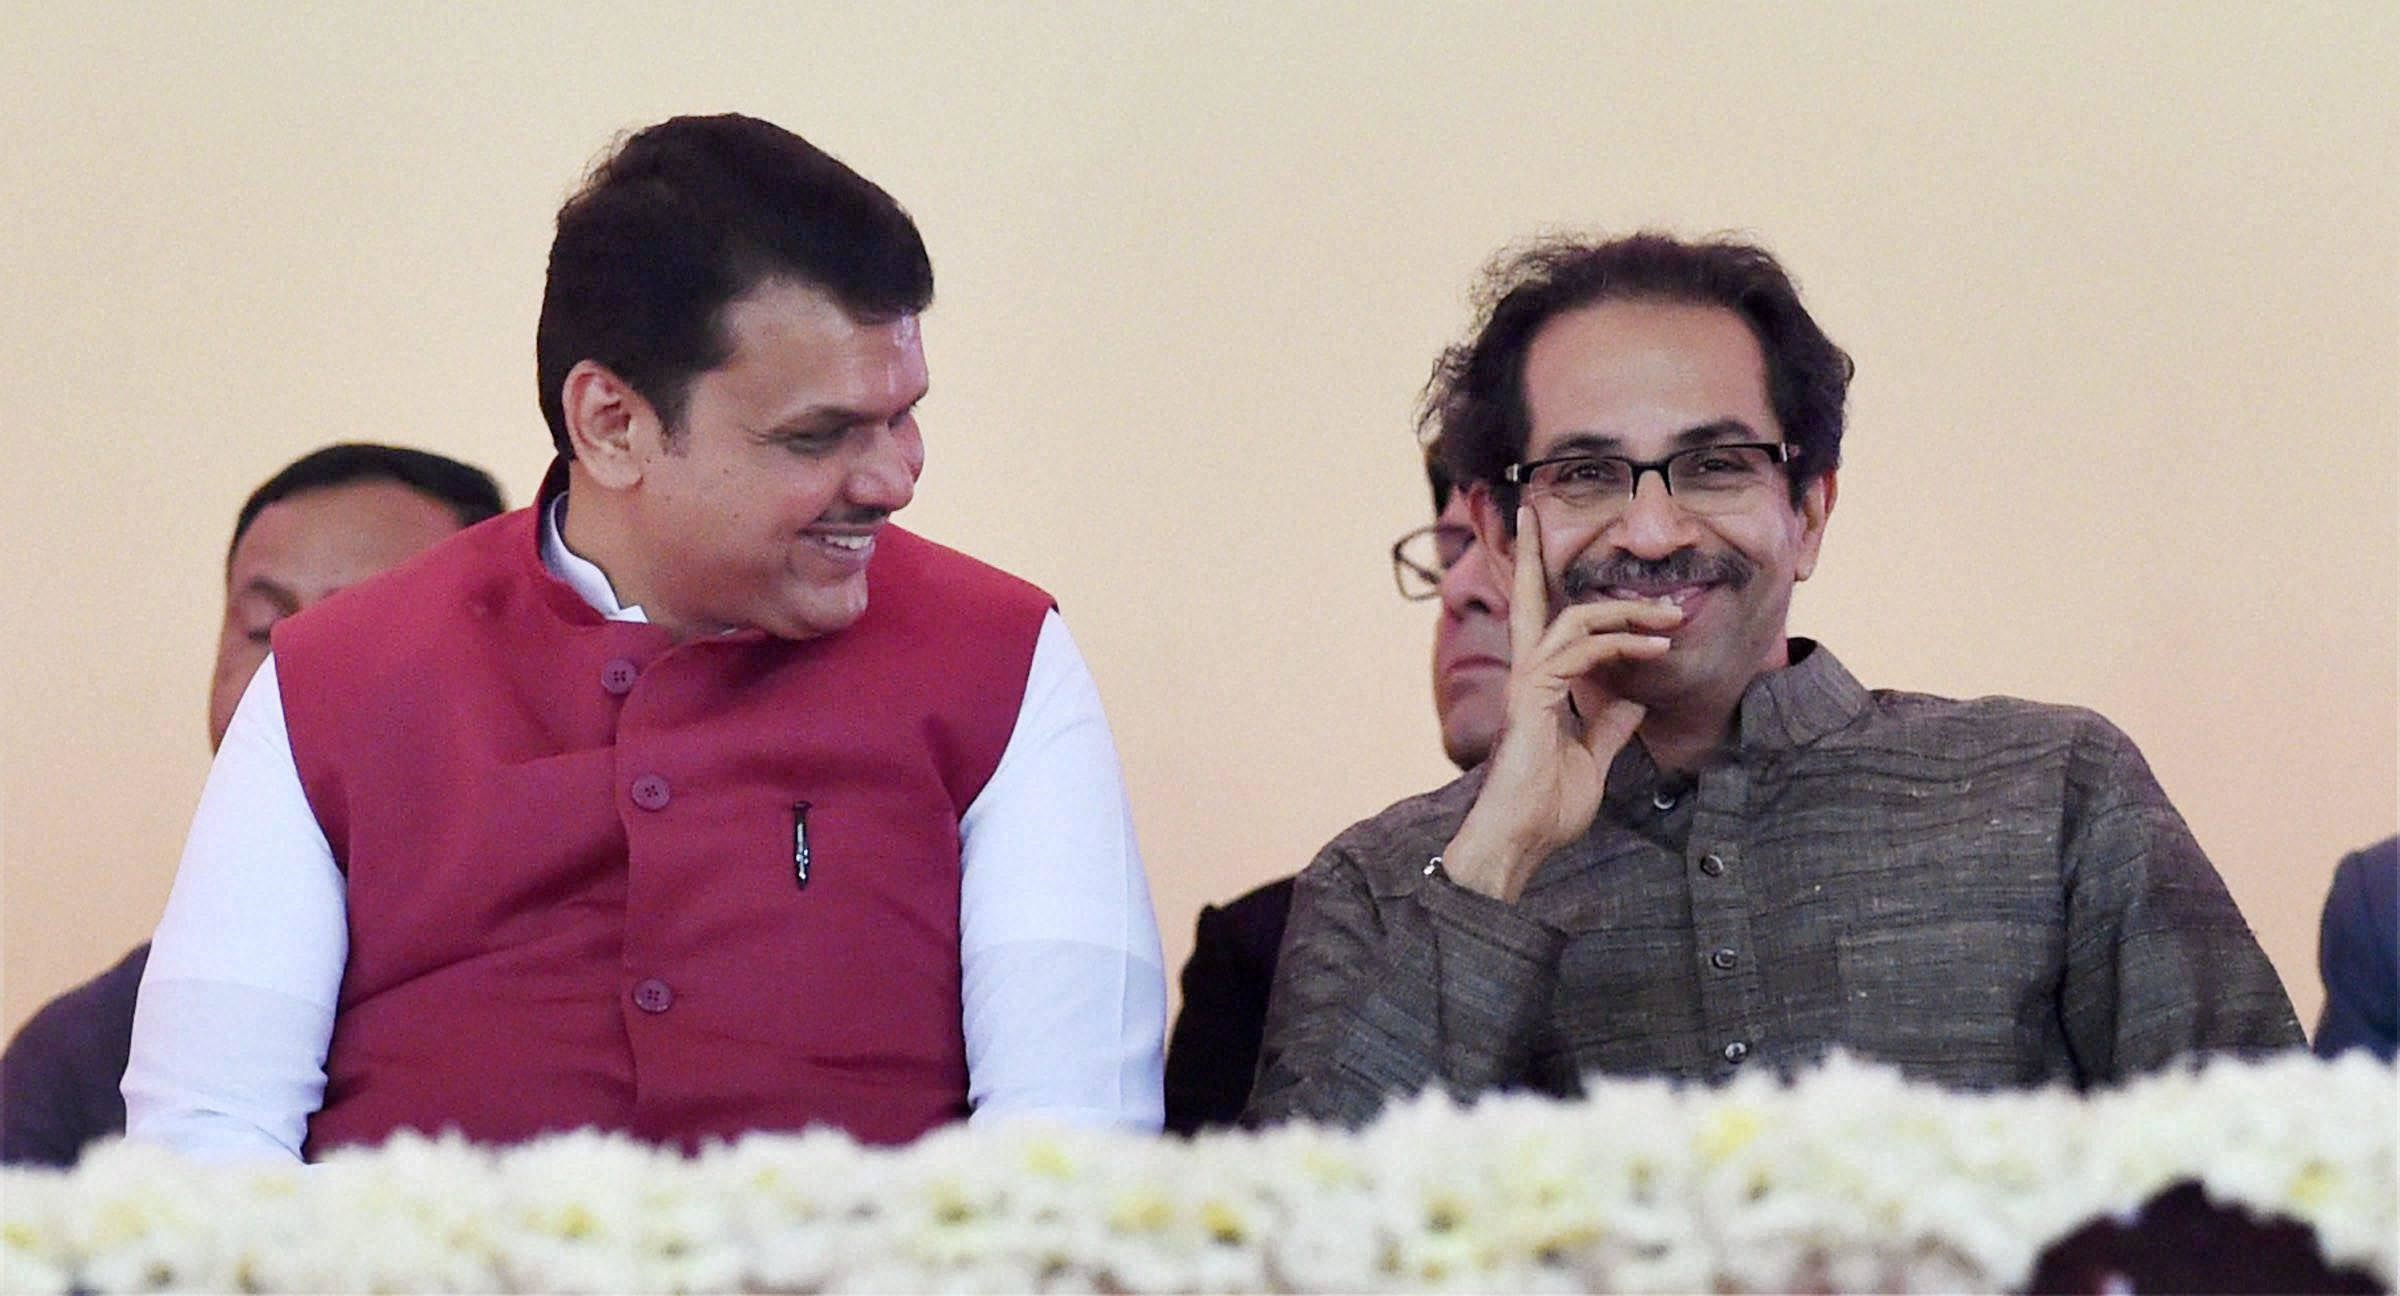 In happier times: Maharashtra chief minister Devendra Fadnavis and Shiv Sena president Uddhav Thackarey. Credit: PTI